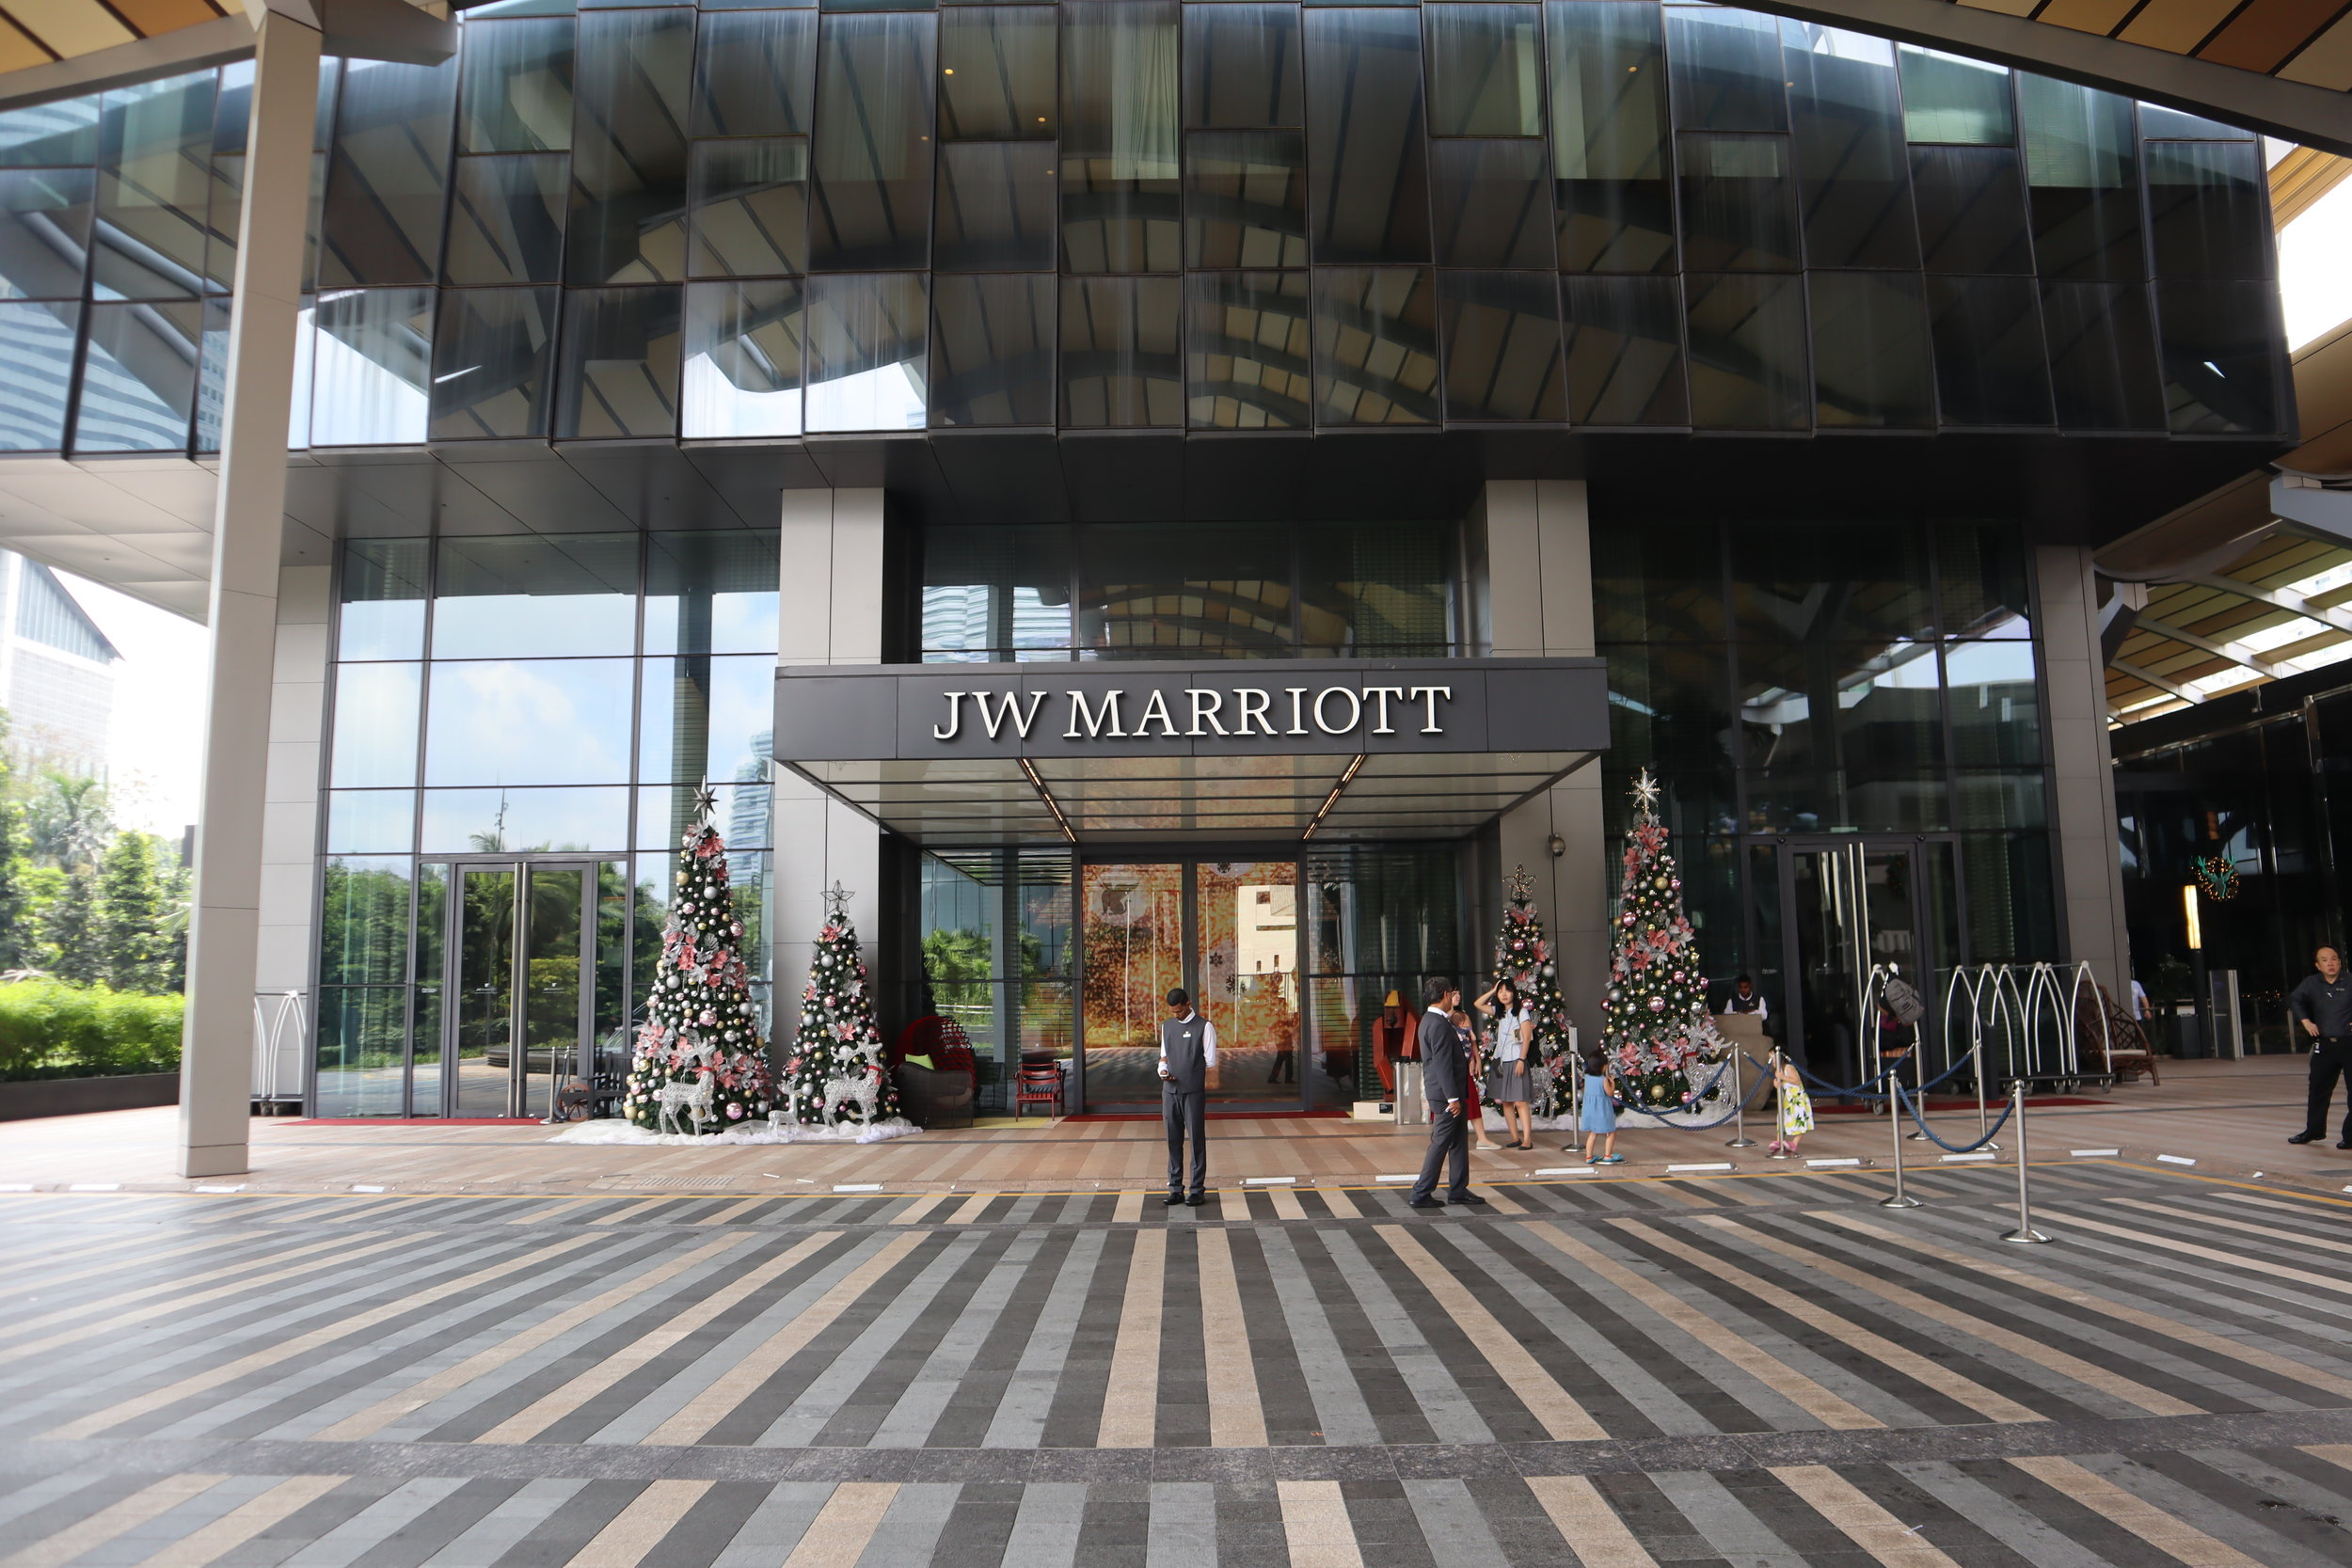 JW Marriott Singapore South Beach – Entrance